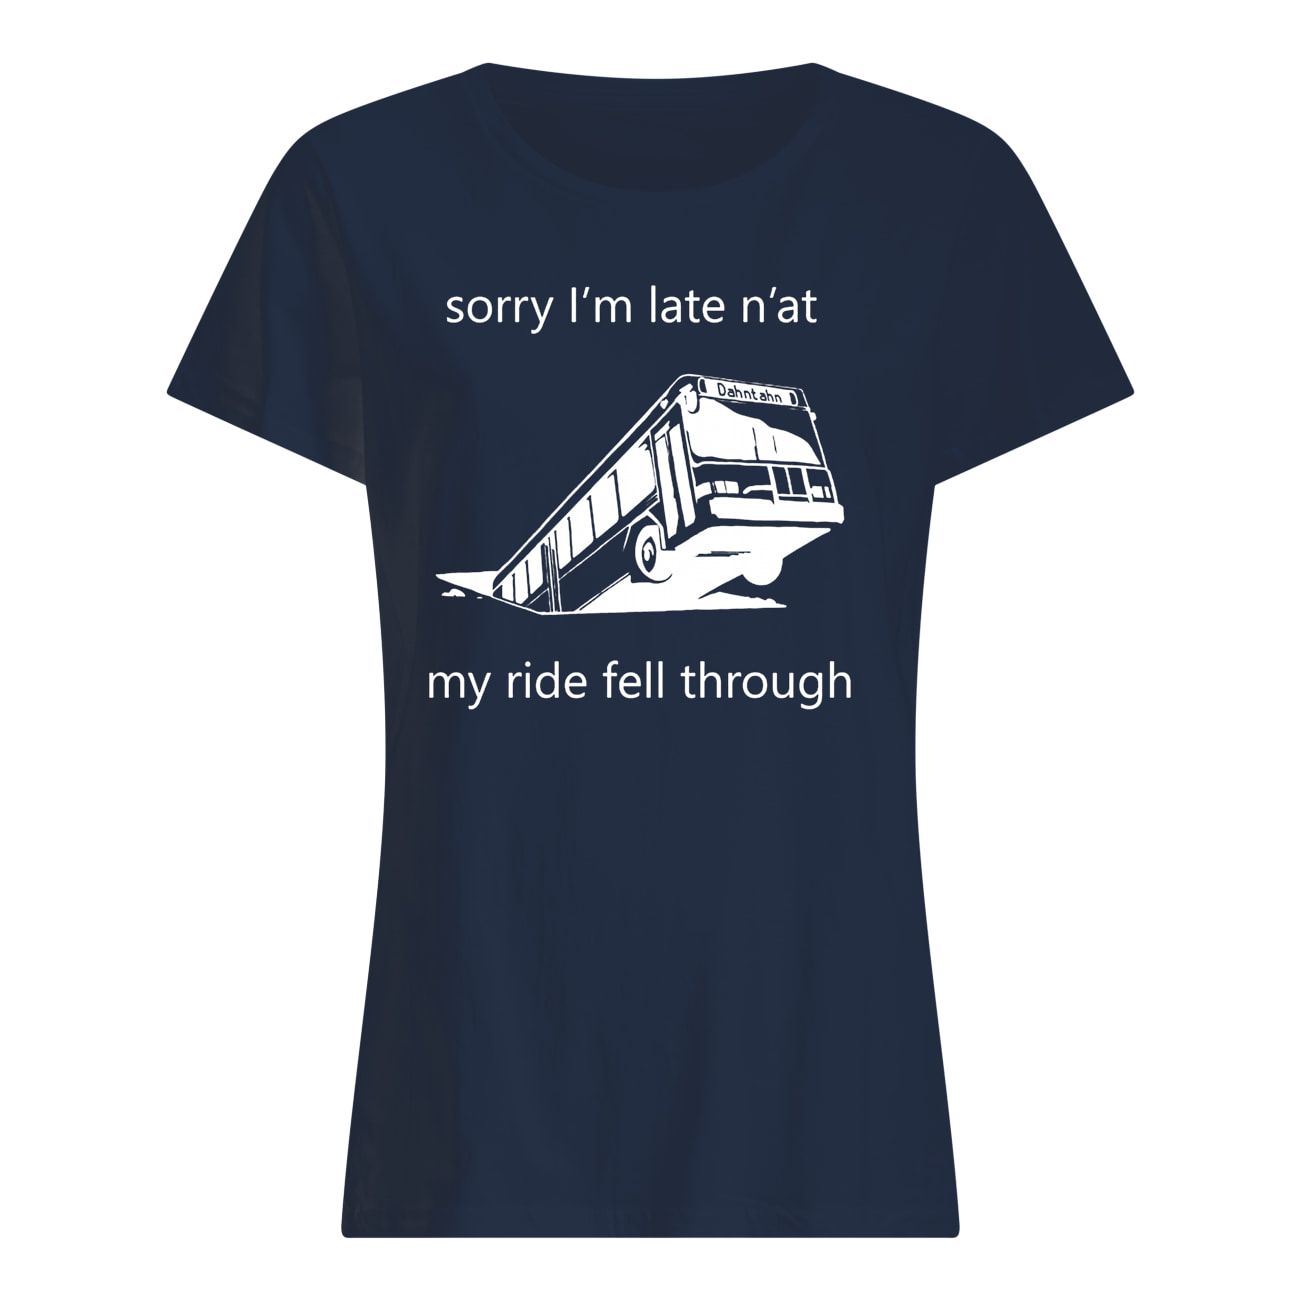 Sorry i'm late n'at my ride fell through pittsburgh bus in sinkhole womens shirt